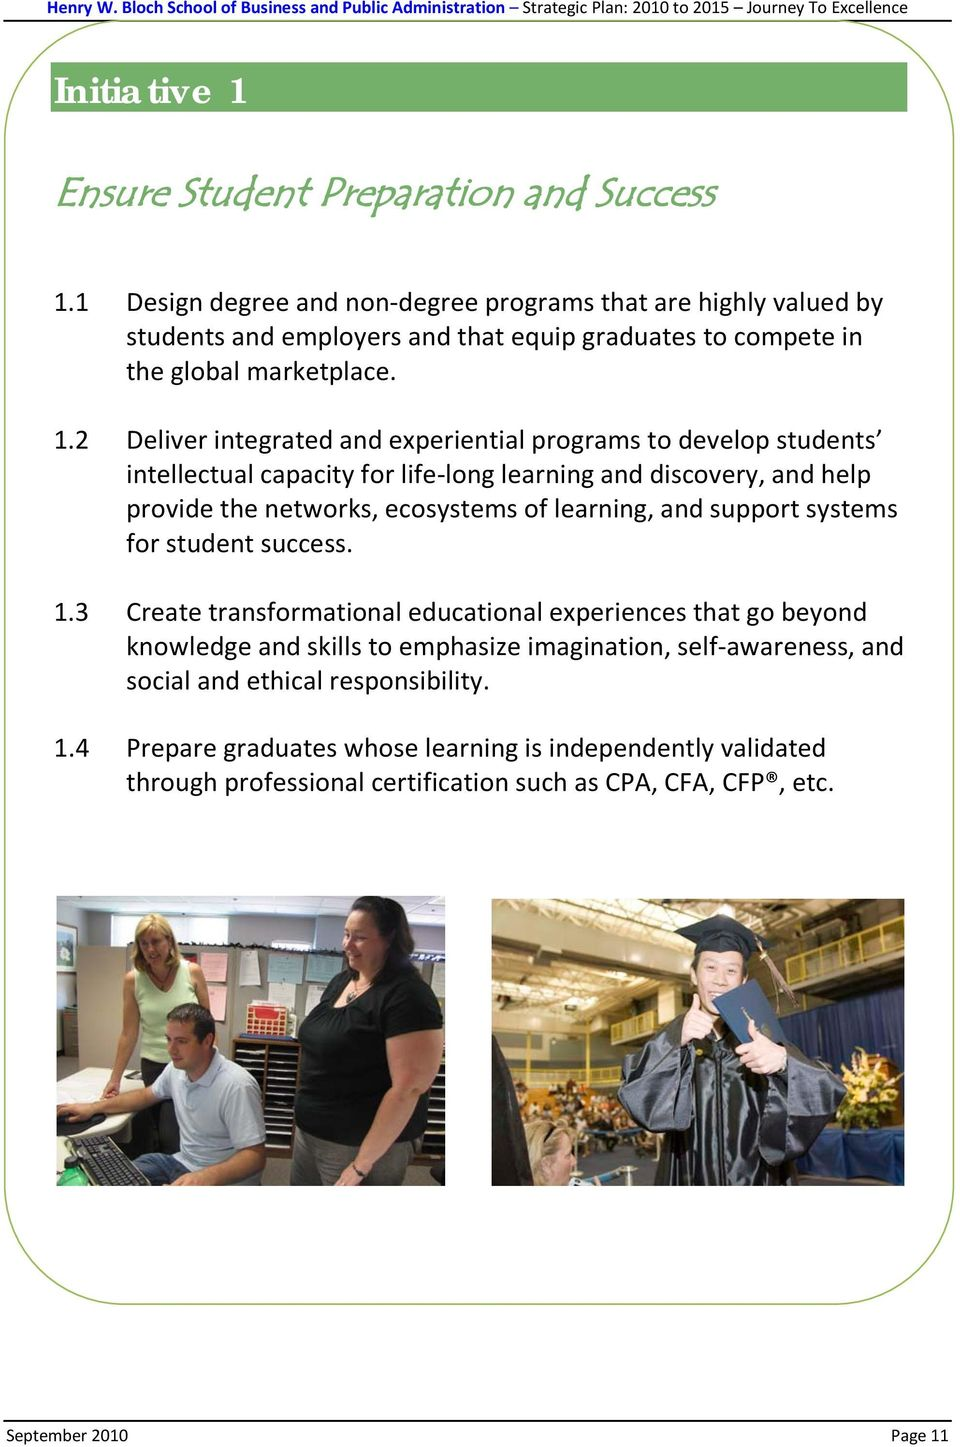 2 Deliver integrated and experiential programs to develop students intellectual capacity for life-long learning and discovery, and help provide the networks, ecosystems of learning, and